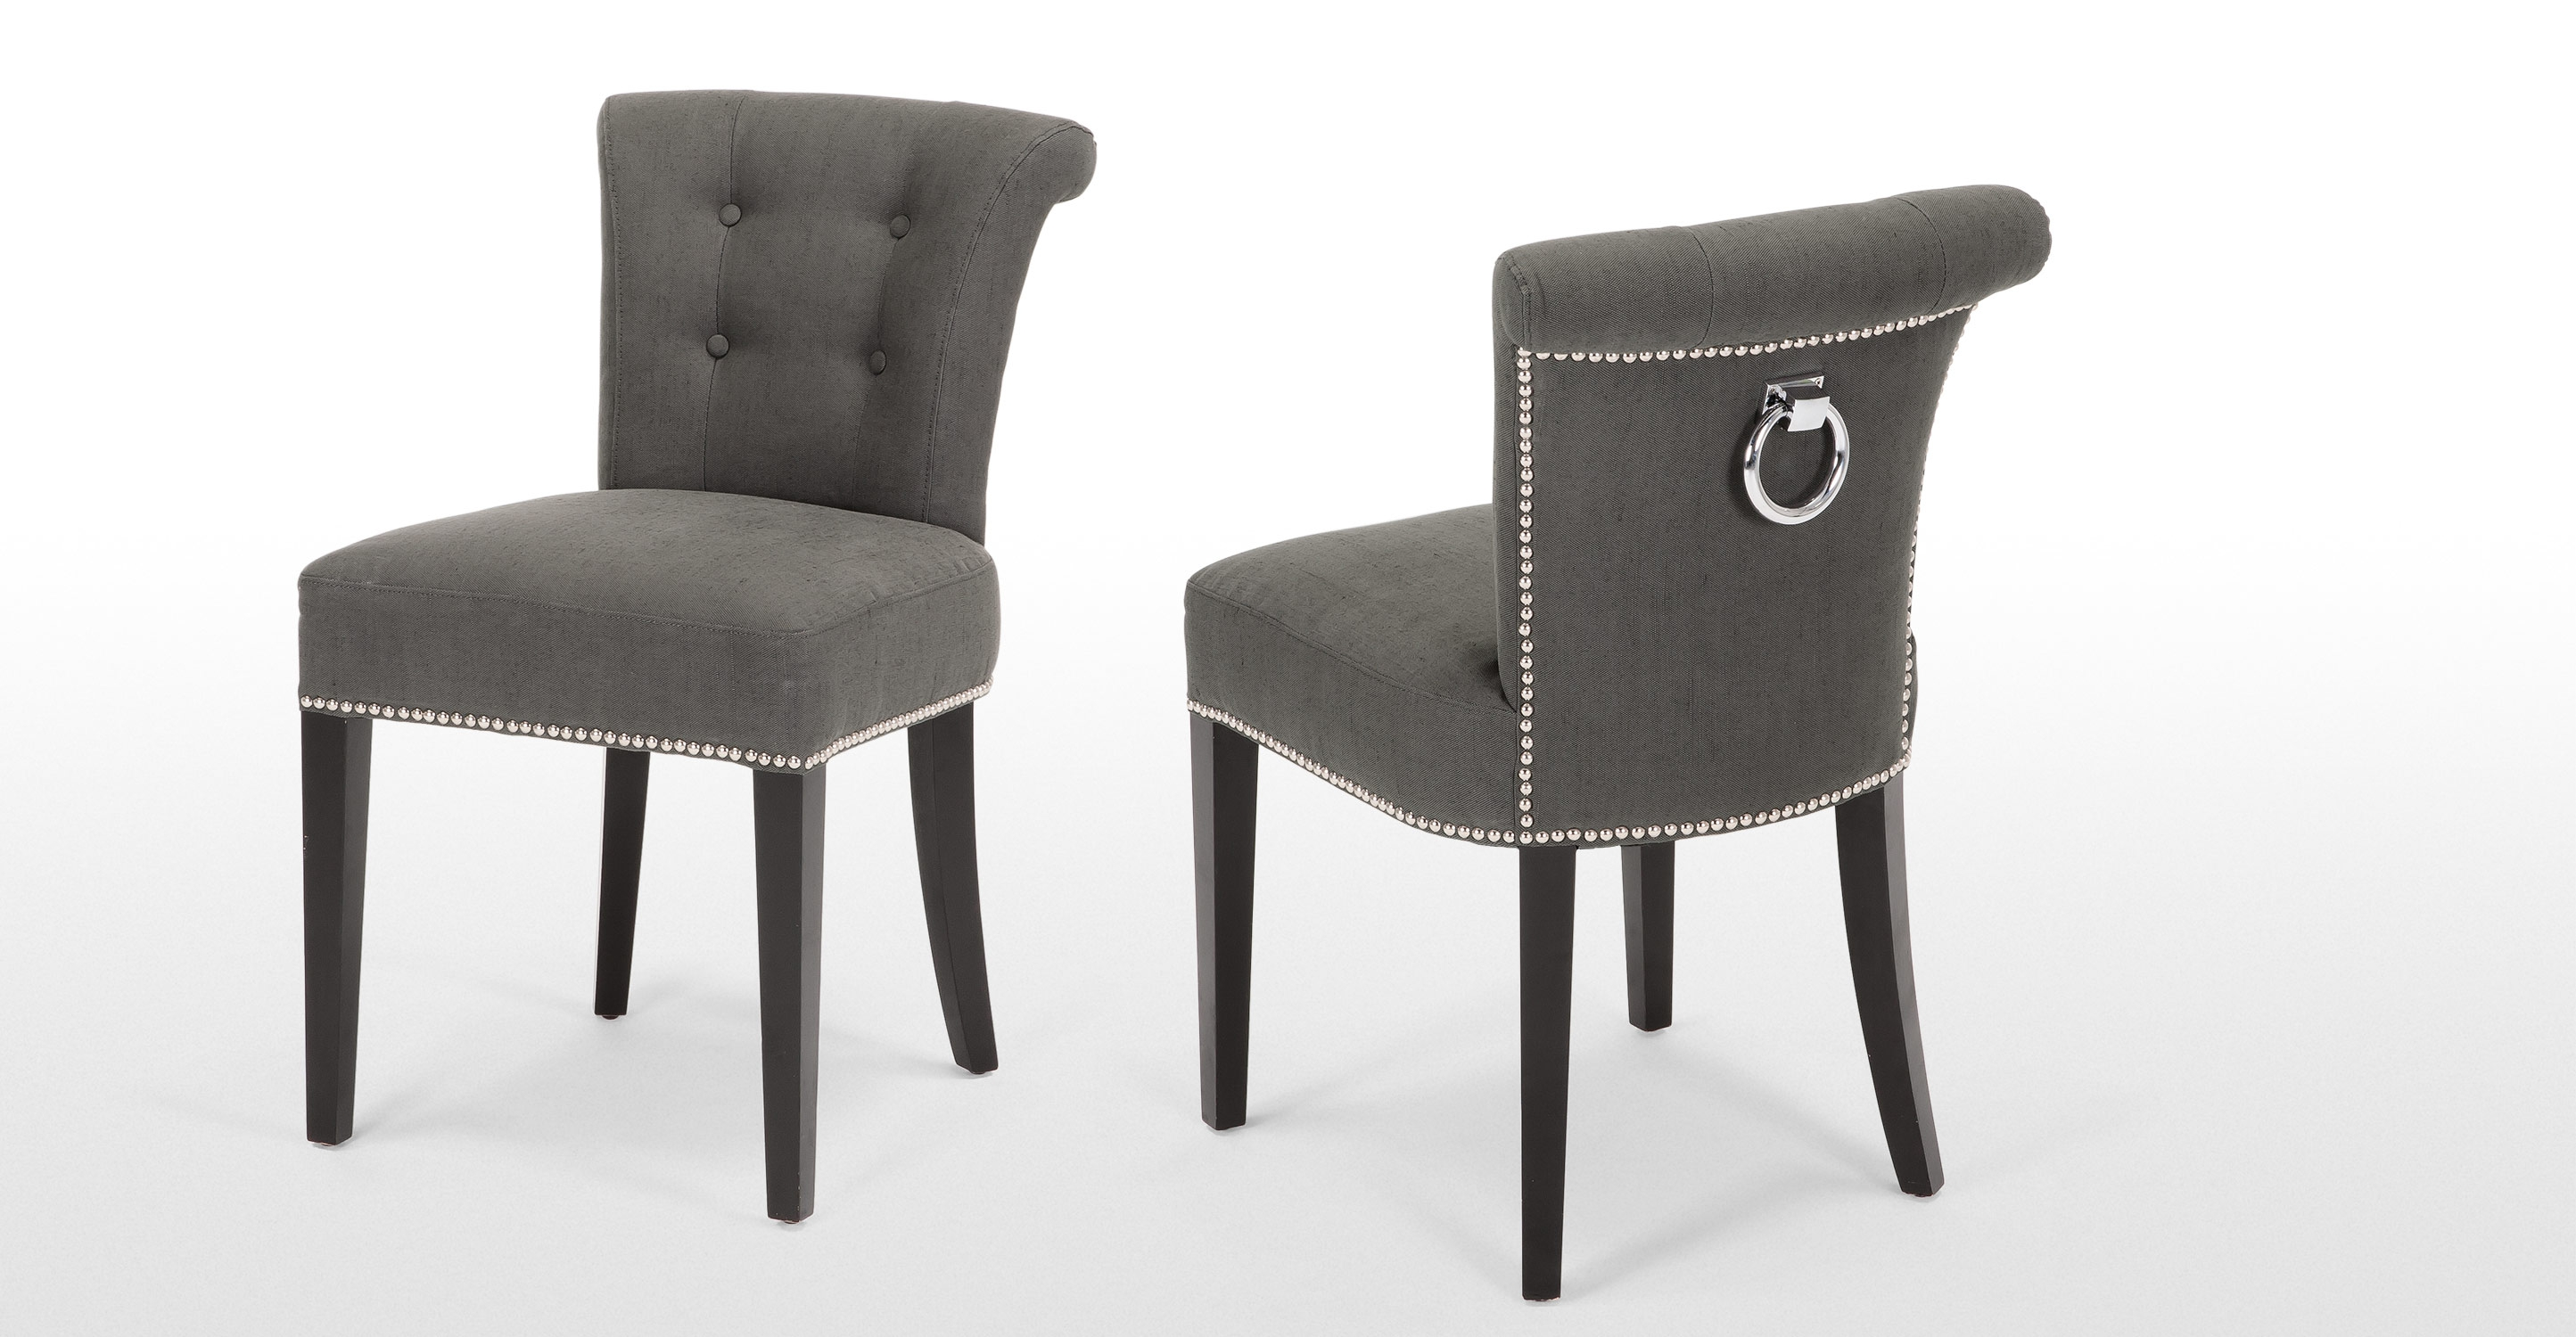 Tufted leather dining chairs - Tufted Leather Dining Room Chairs Tufted Dining Chair Wooden Dining Chairs